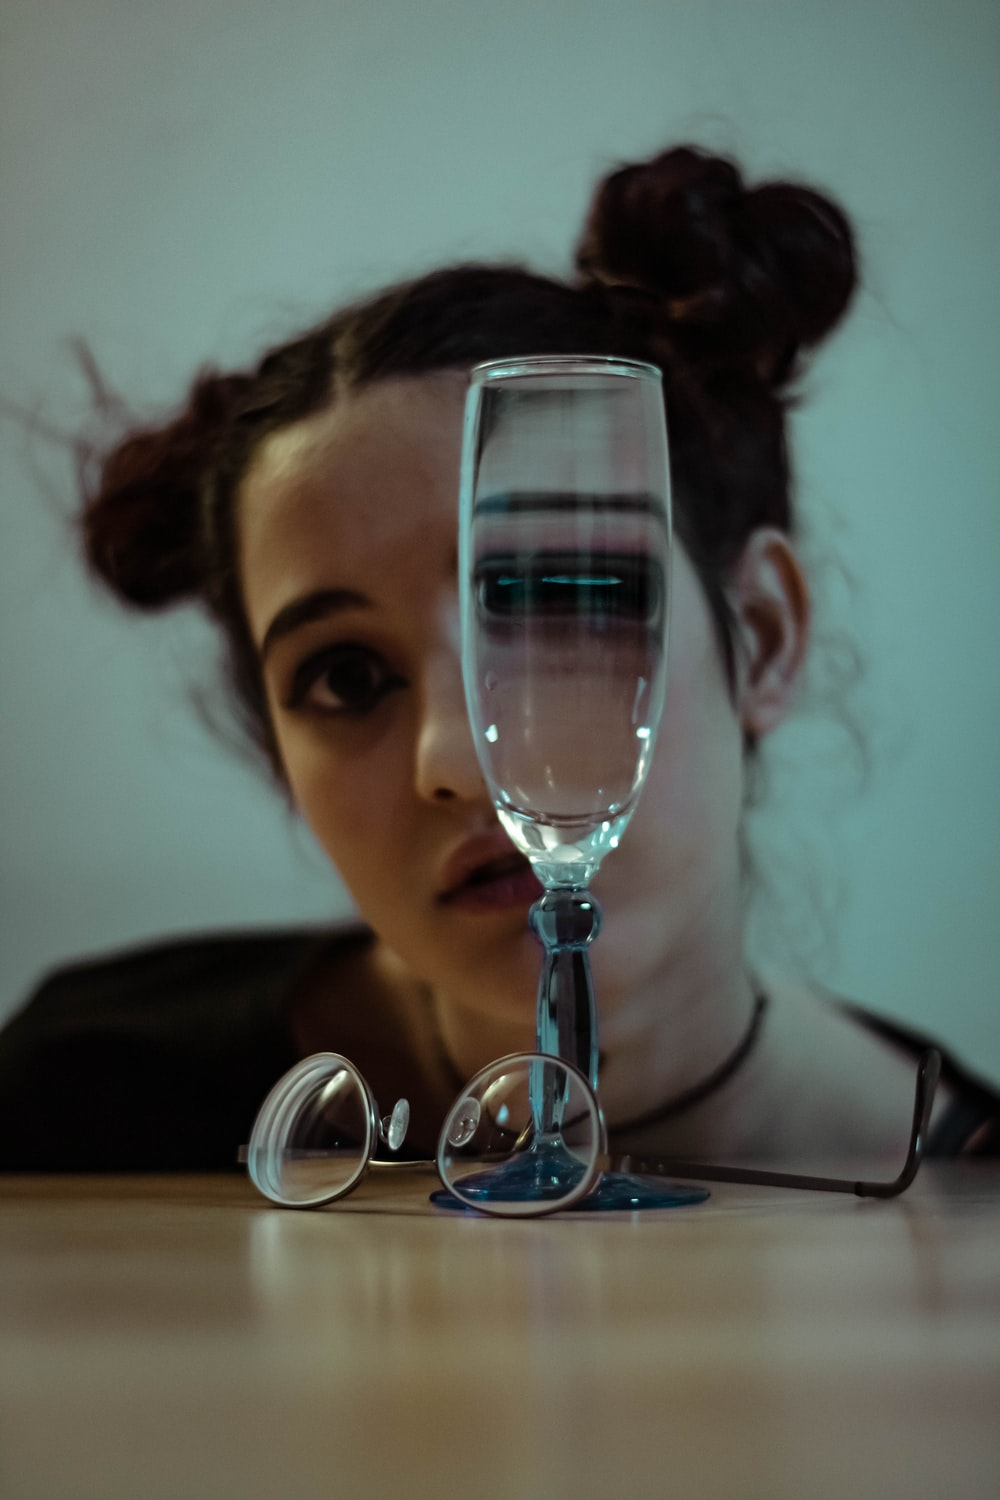 clear glass wine glass on top of table overlooking woman